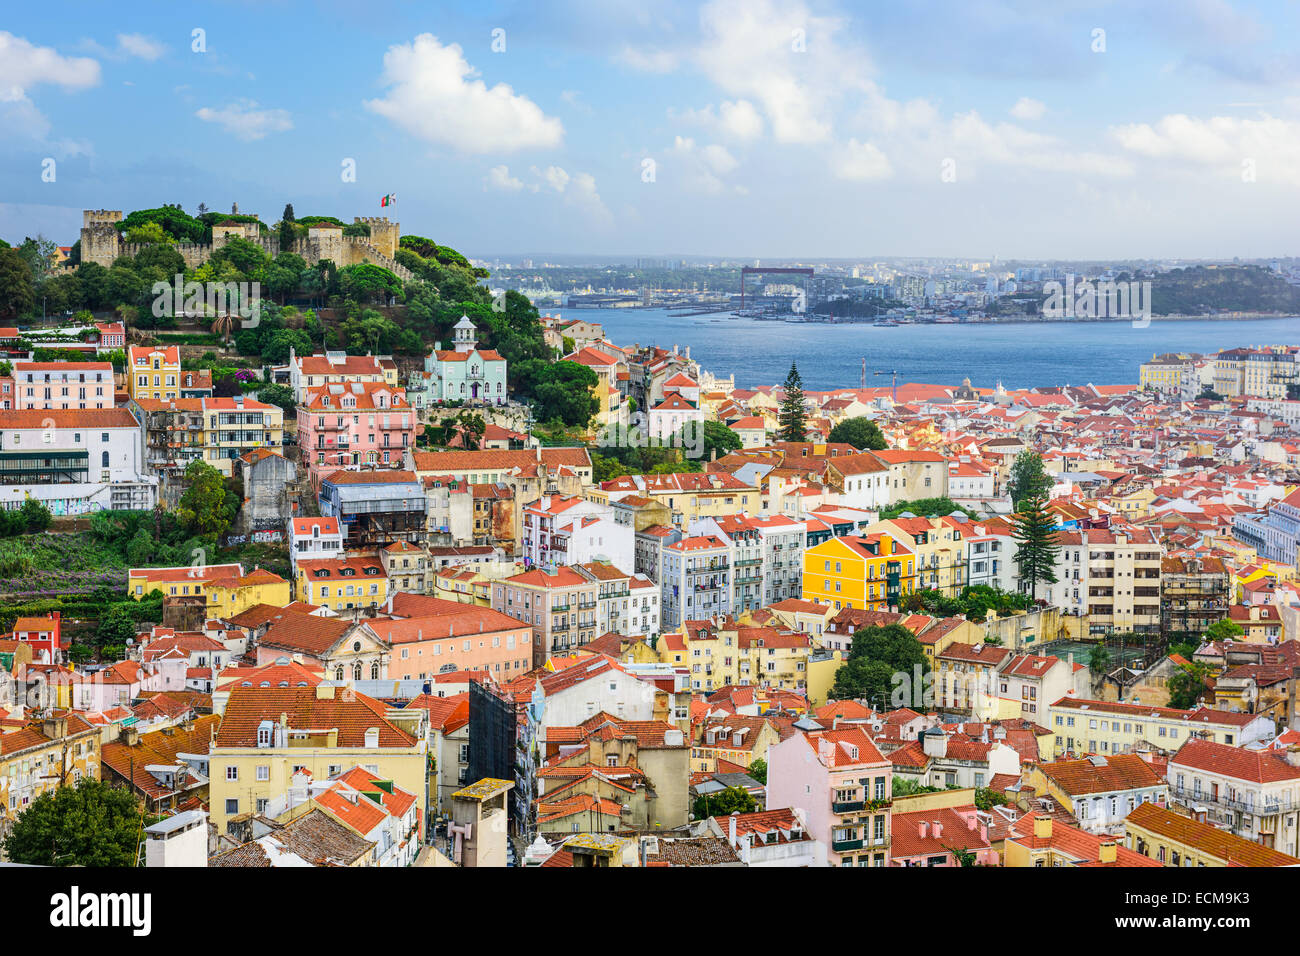 Lisbon, Portugal skyline at Sao Jorge Castle in the day. - Stock Image